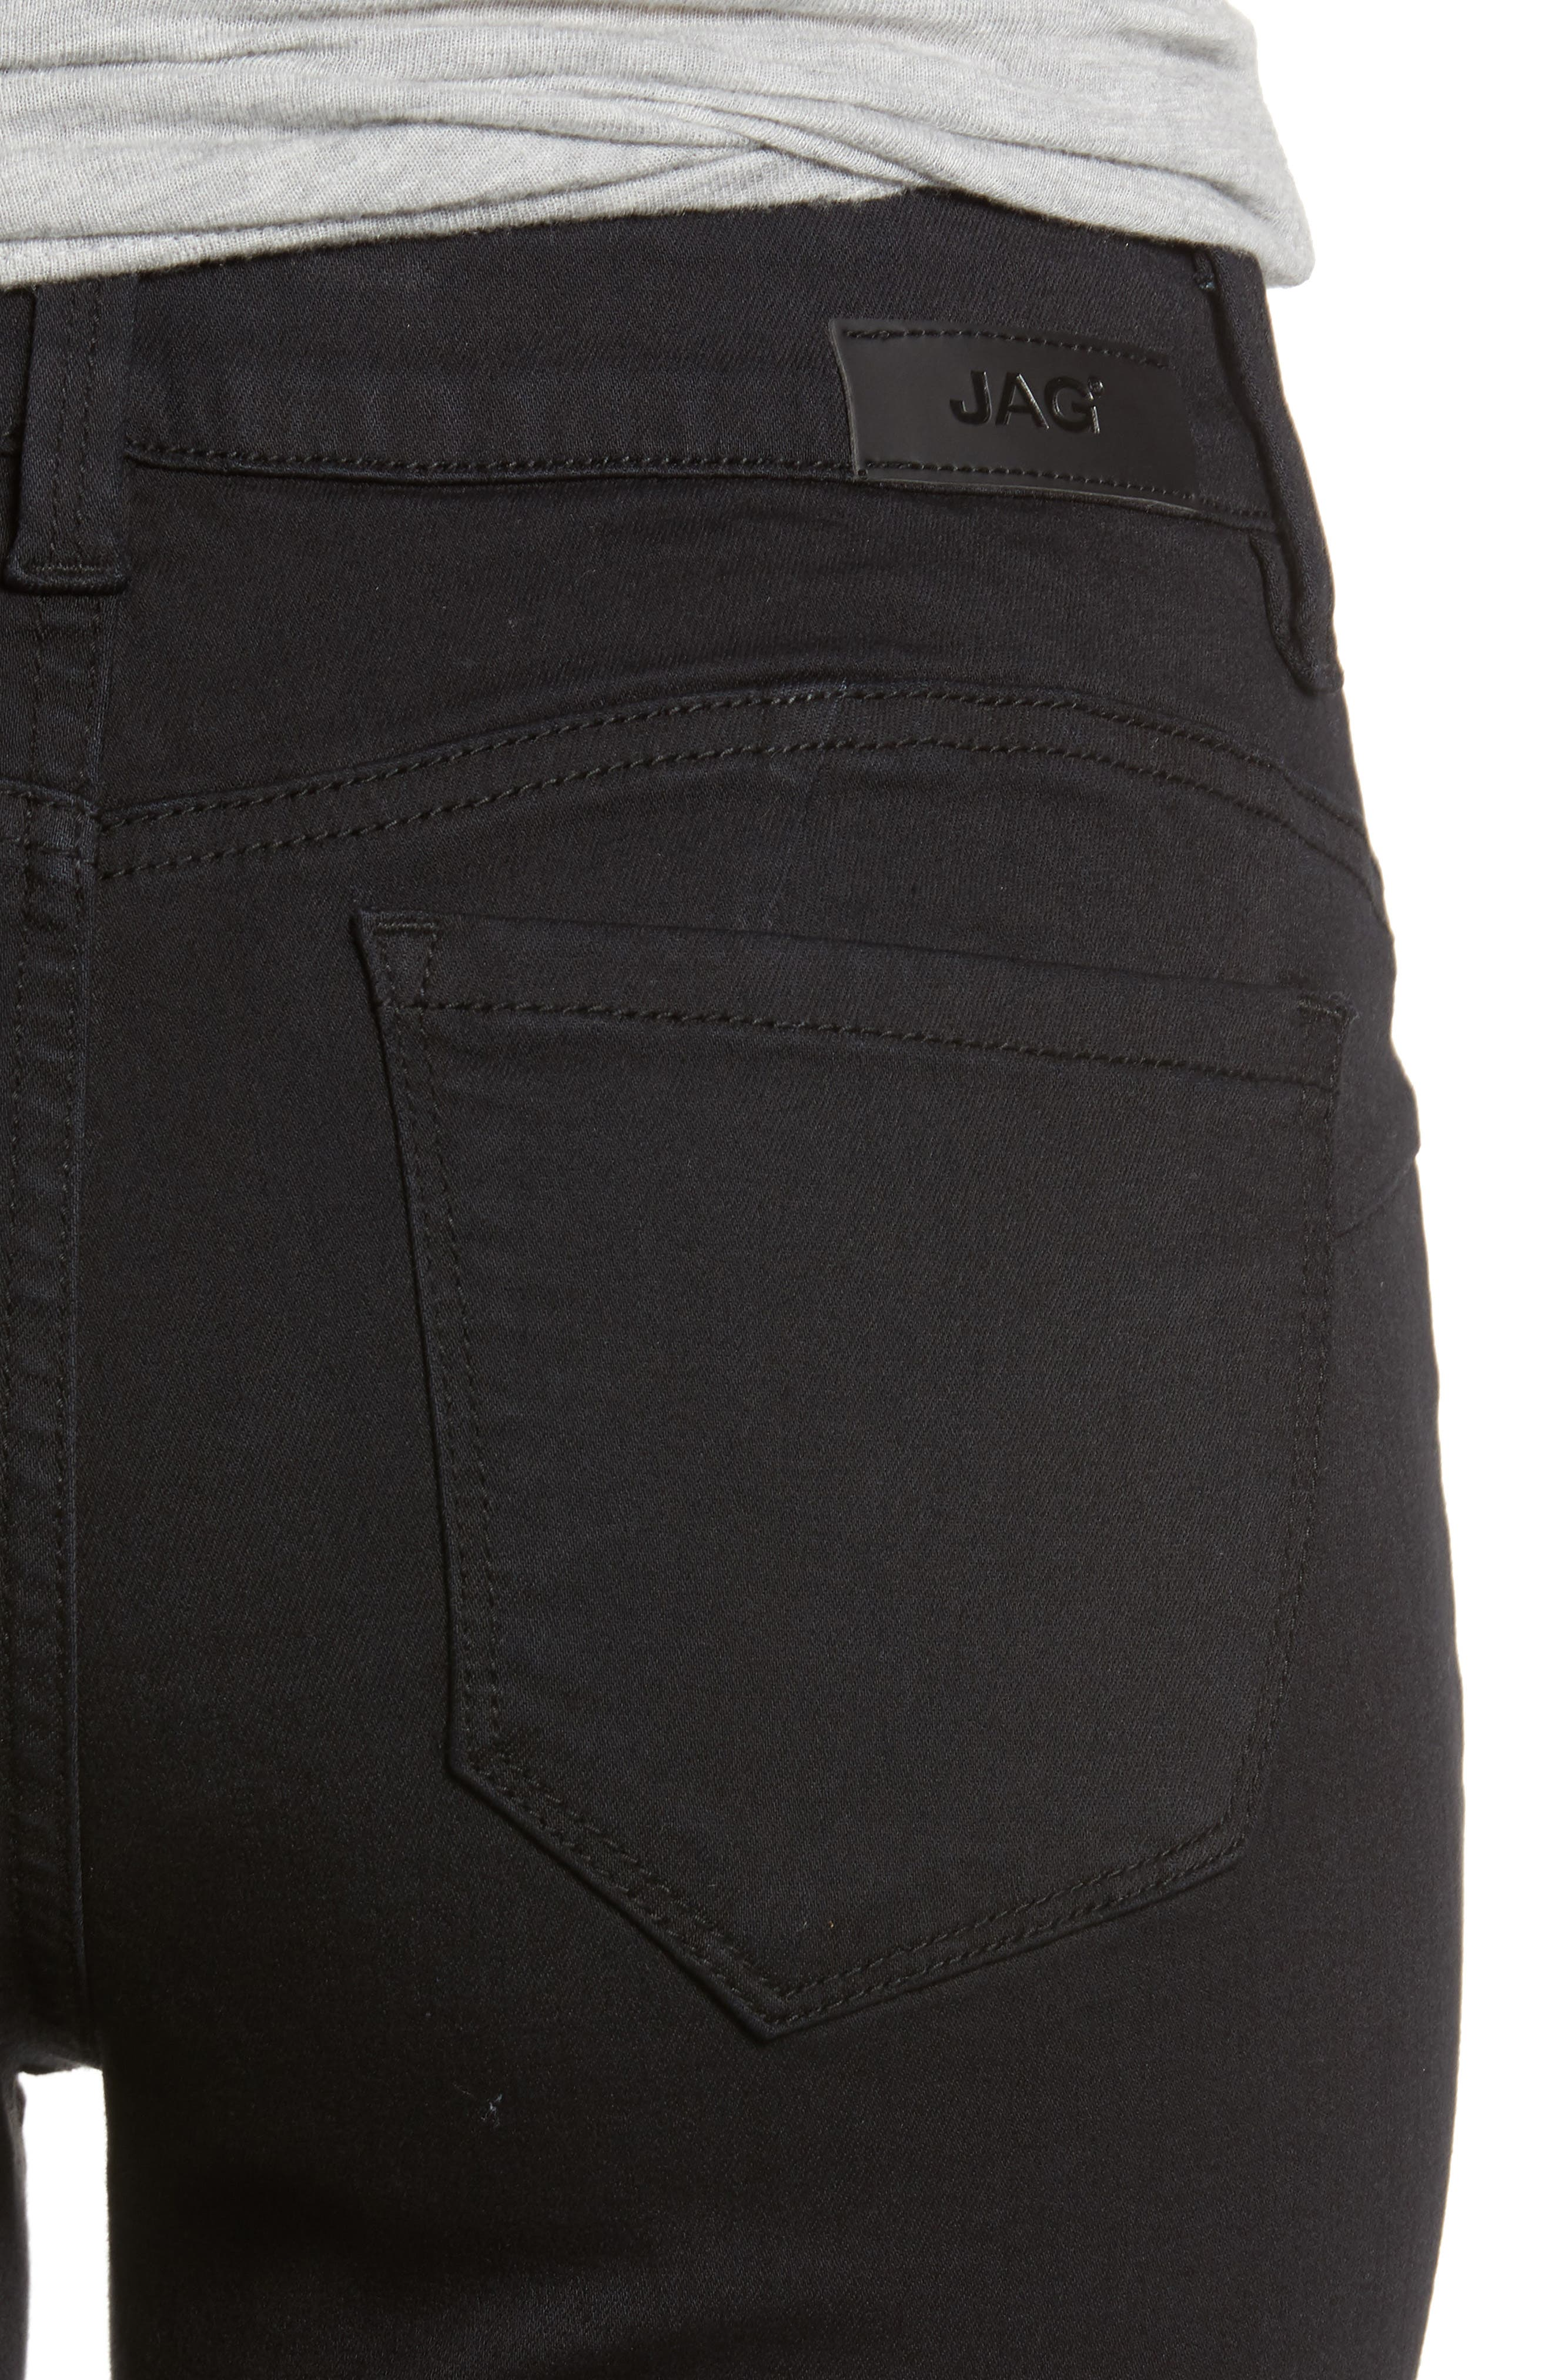 JAG JEANS, Bryn Pull-On Jeans, Alternate thumbnail 5, color, BLACK